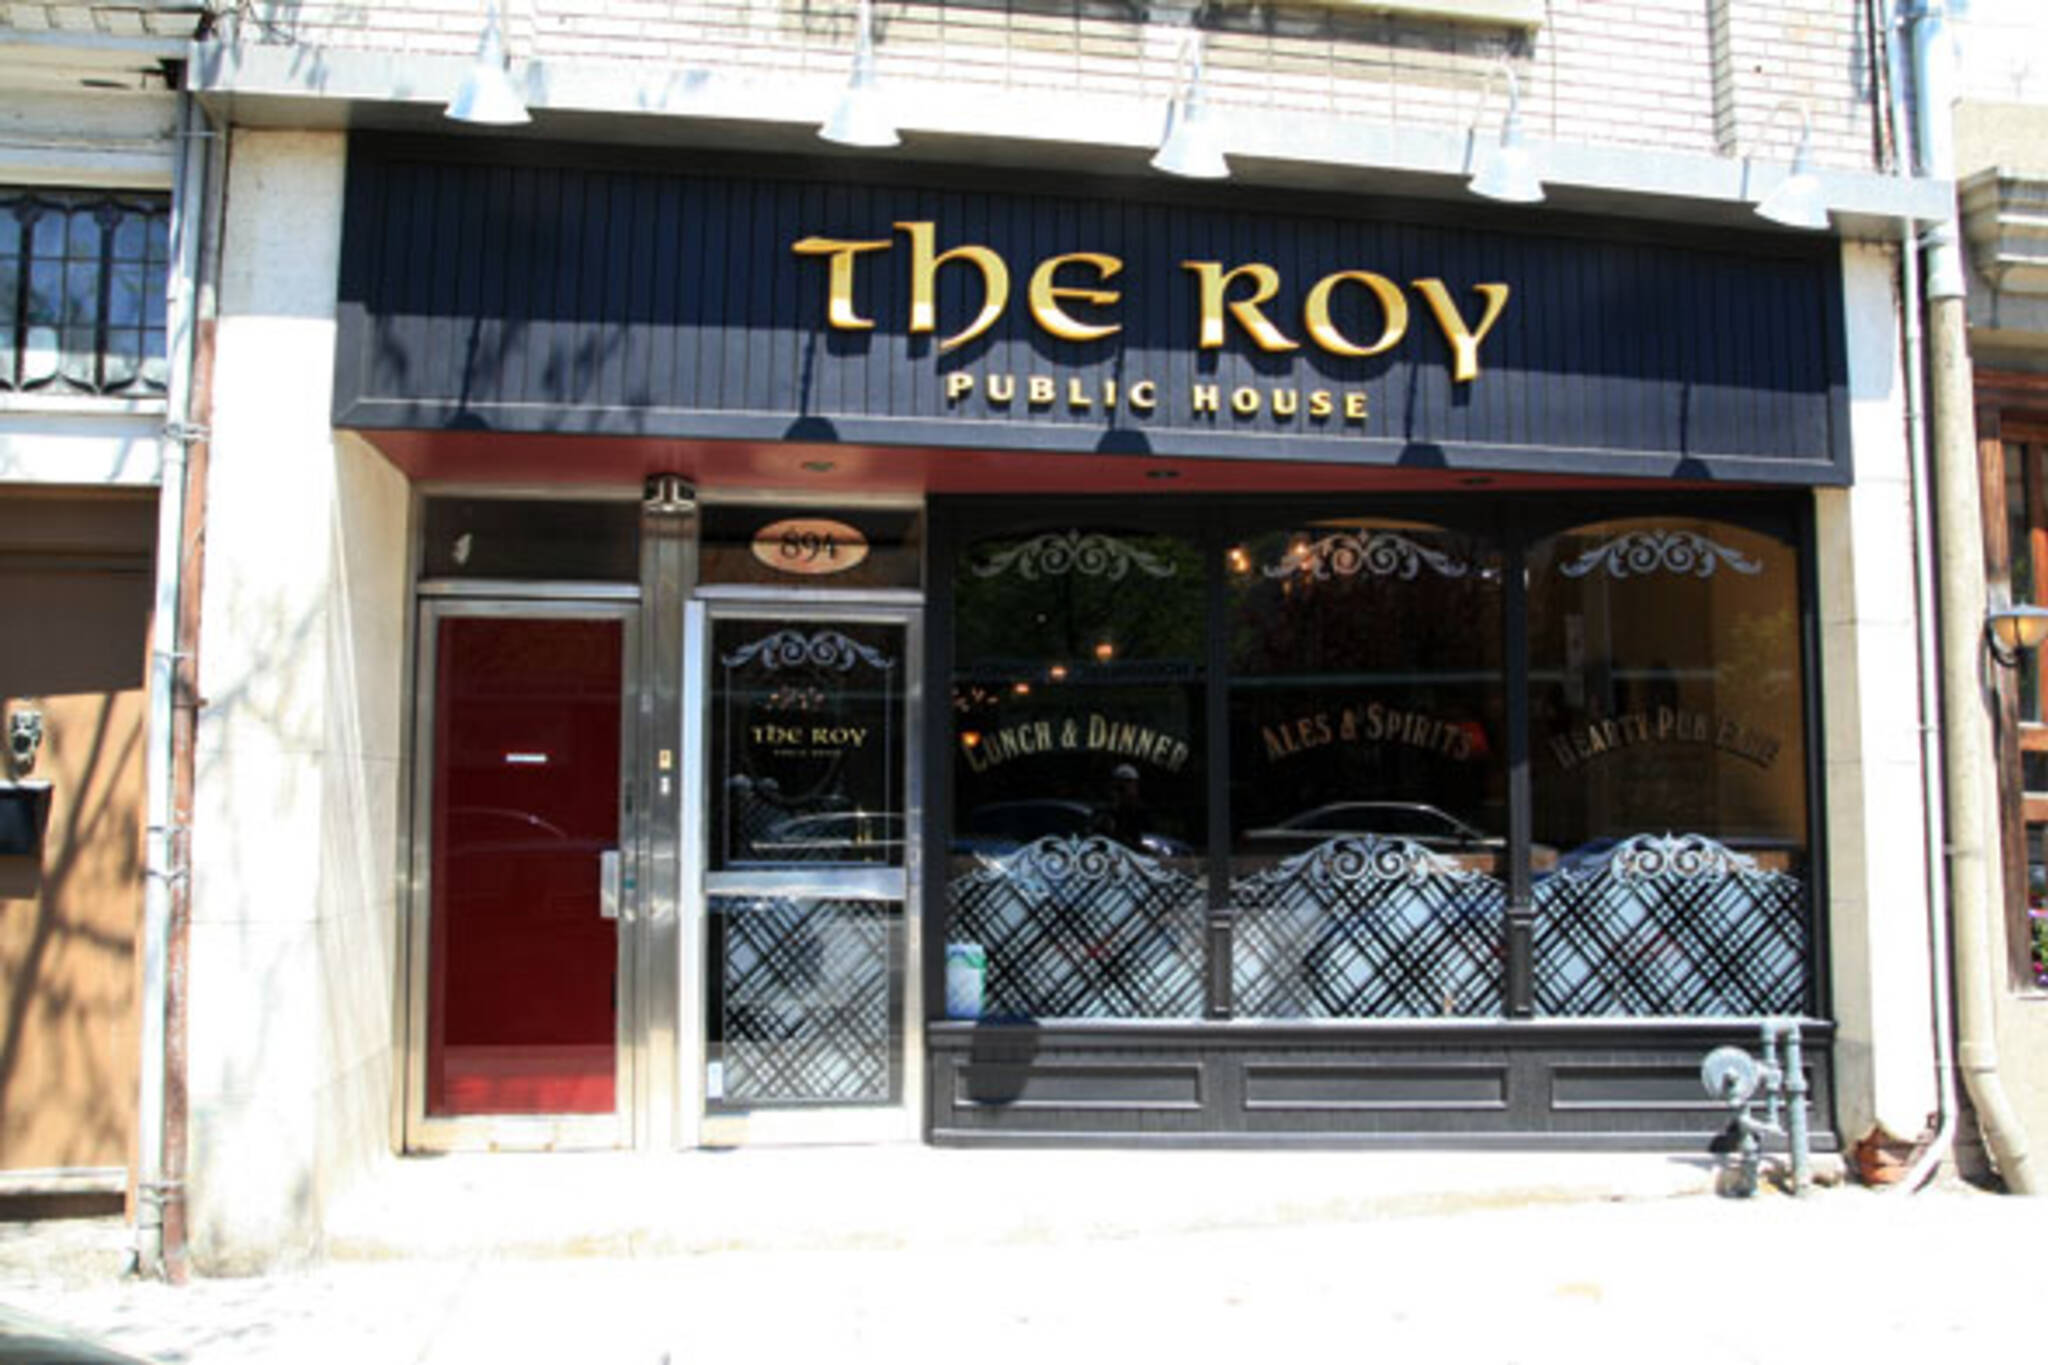 The Roy